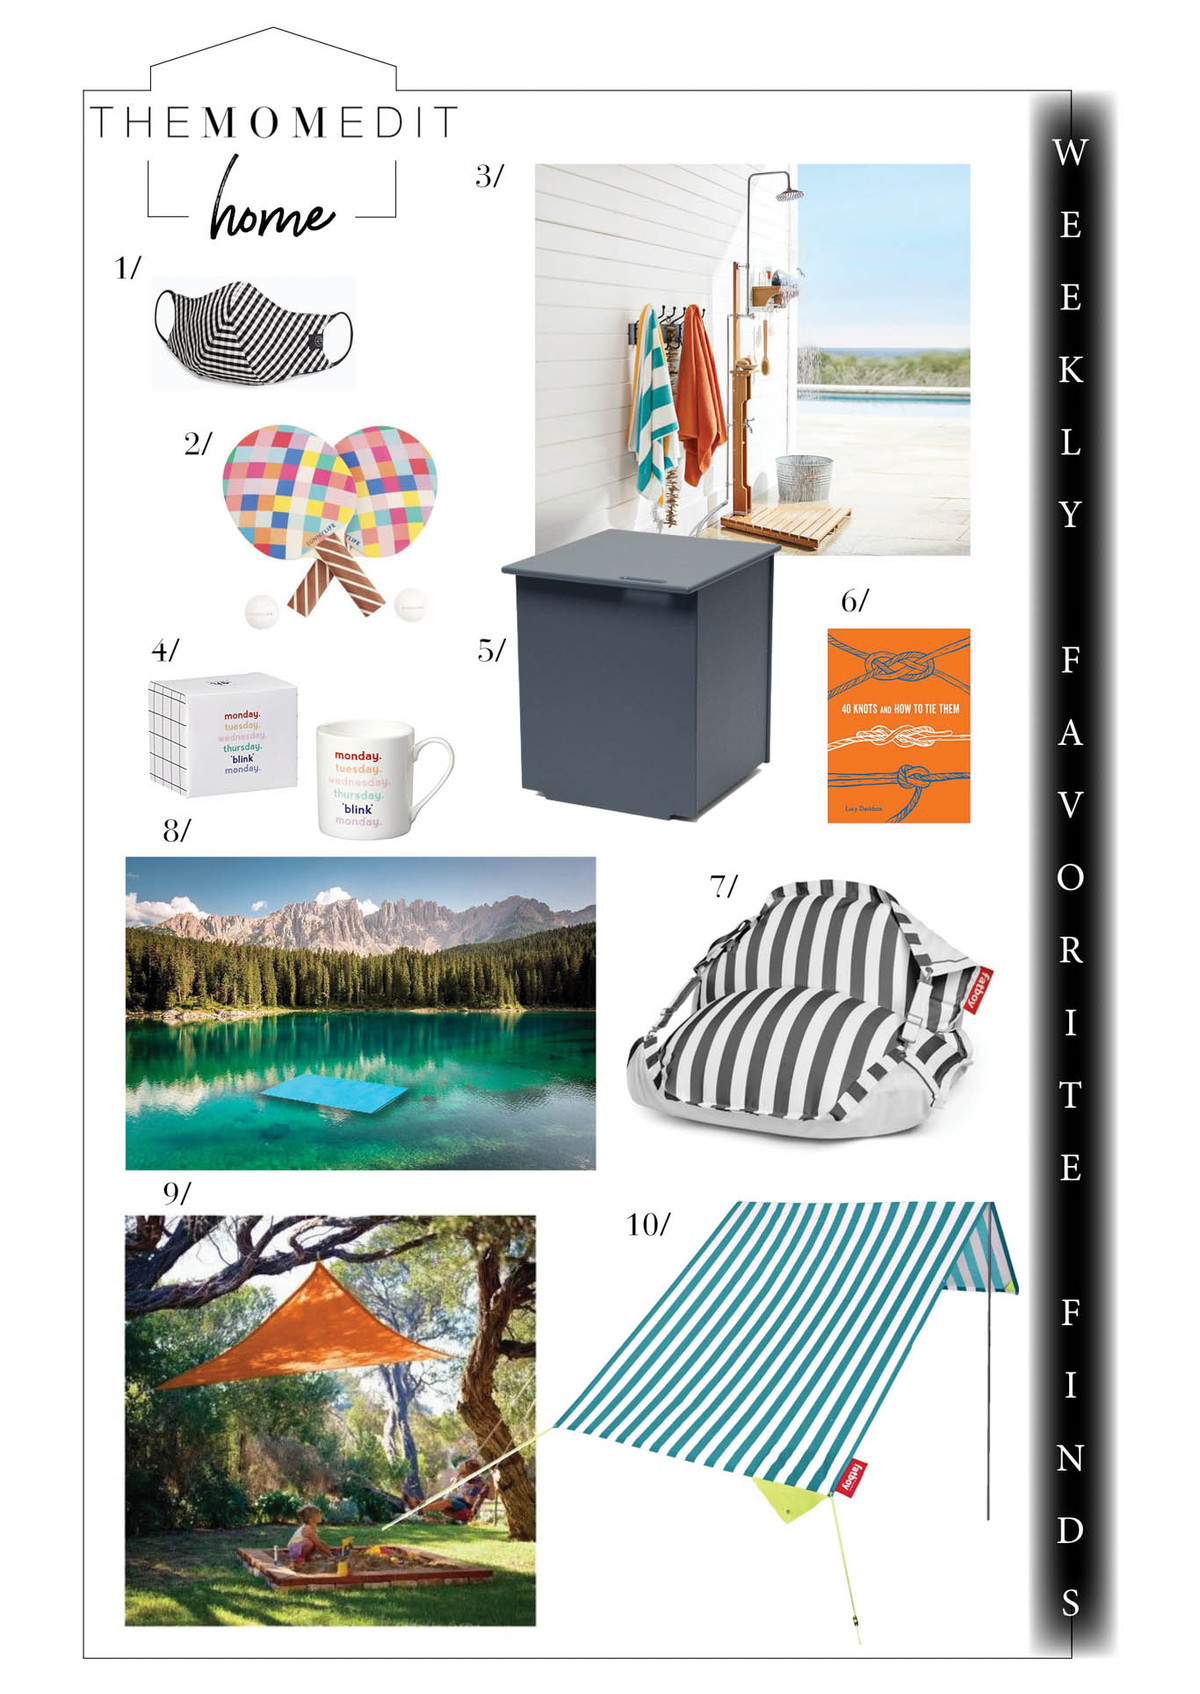 An outdoor shower, a fun mug, a Black-owned business we're obsessing over + great home decor on sale from CB2, Serena & Lily + Lulu & Georgia.